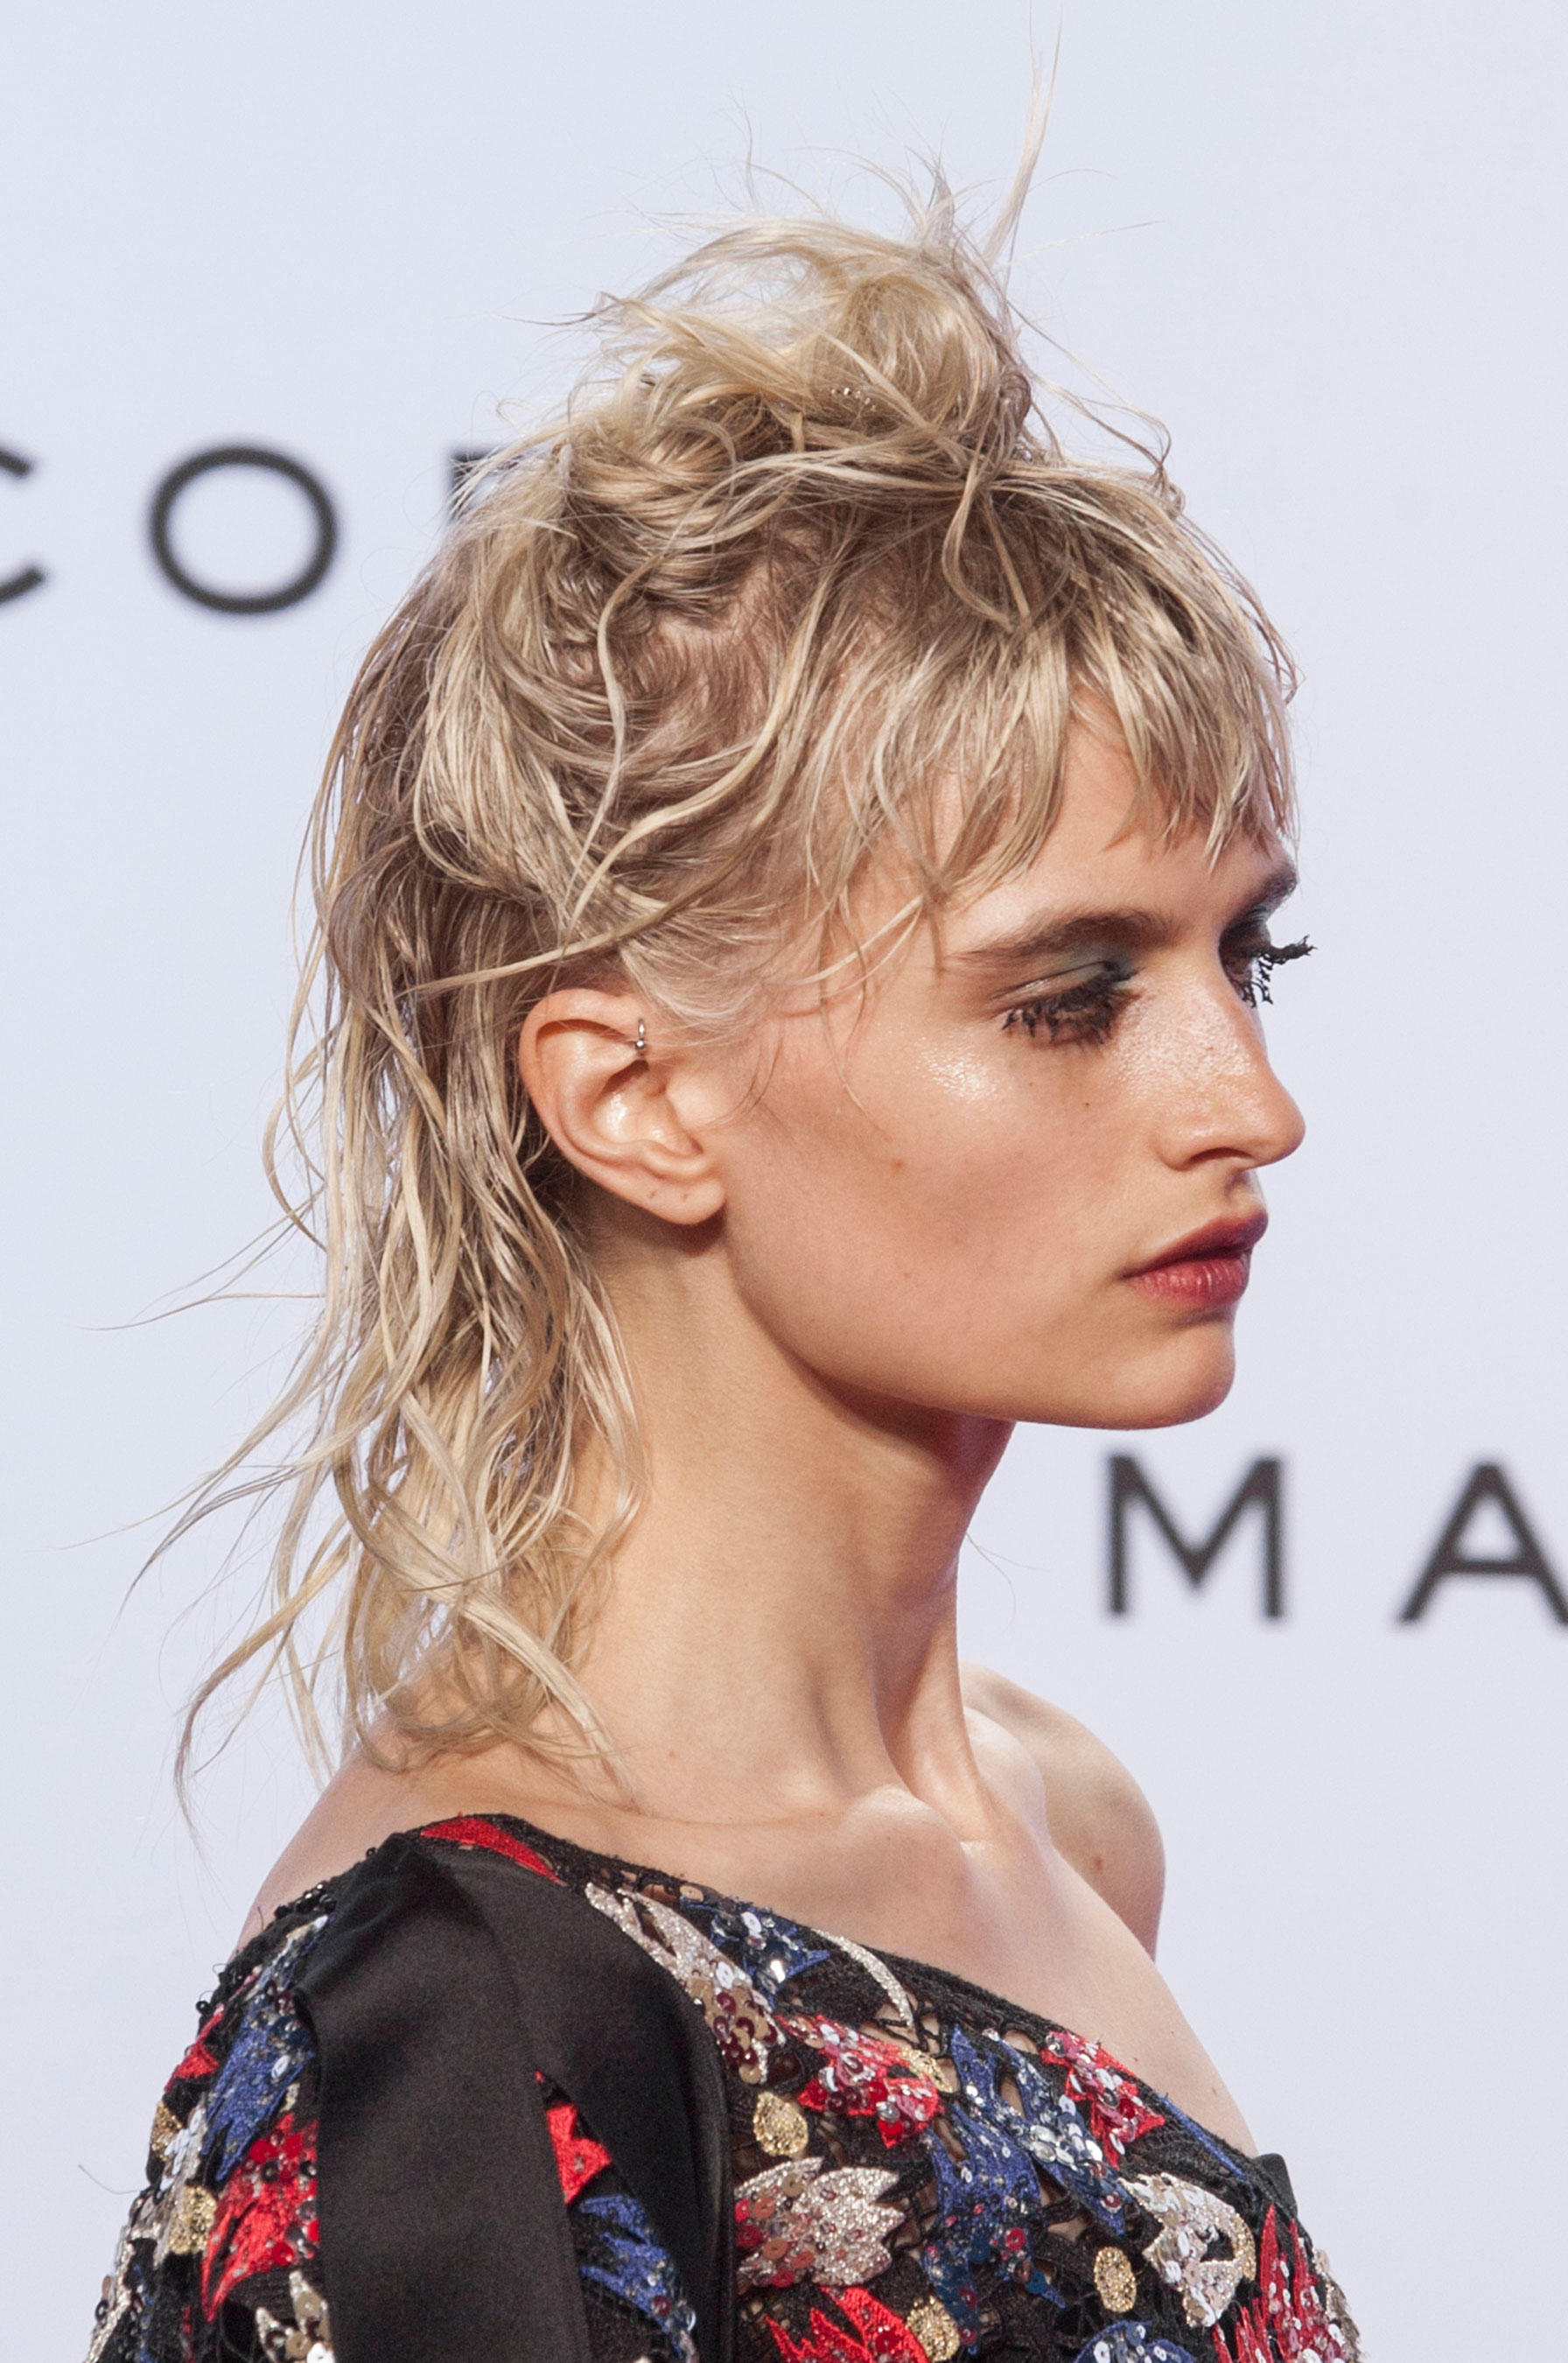 marc-jacobs-spring-2016-runway-beauty-fashion-show-the-impression-65